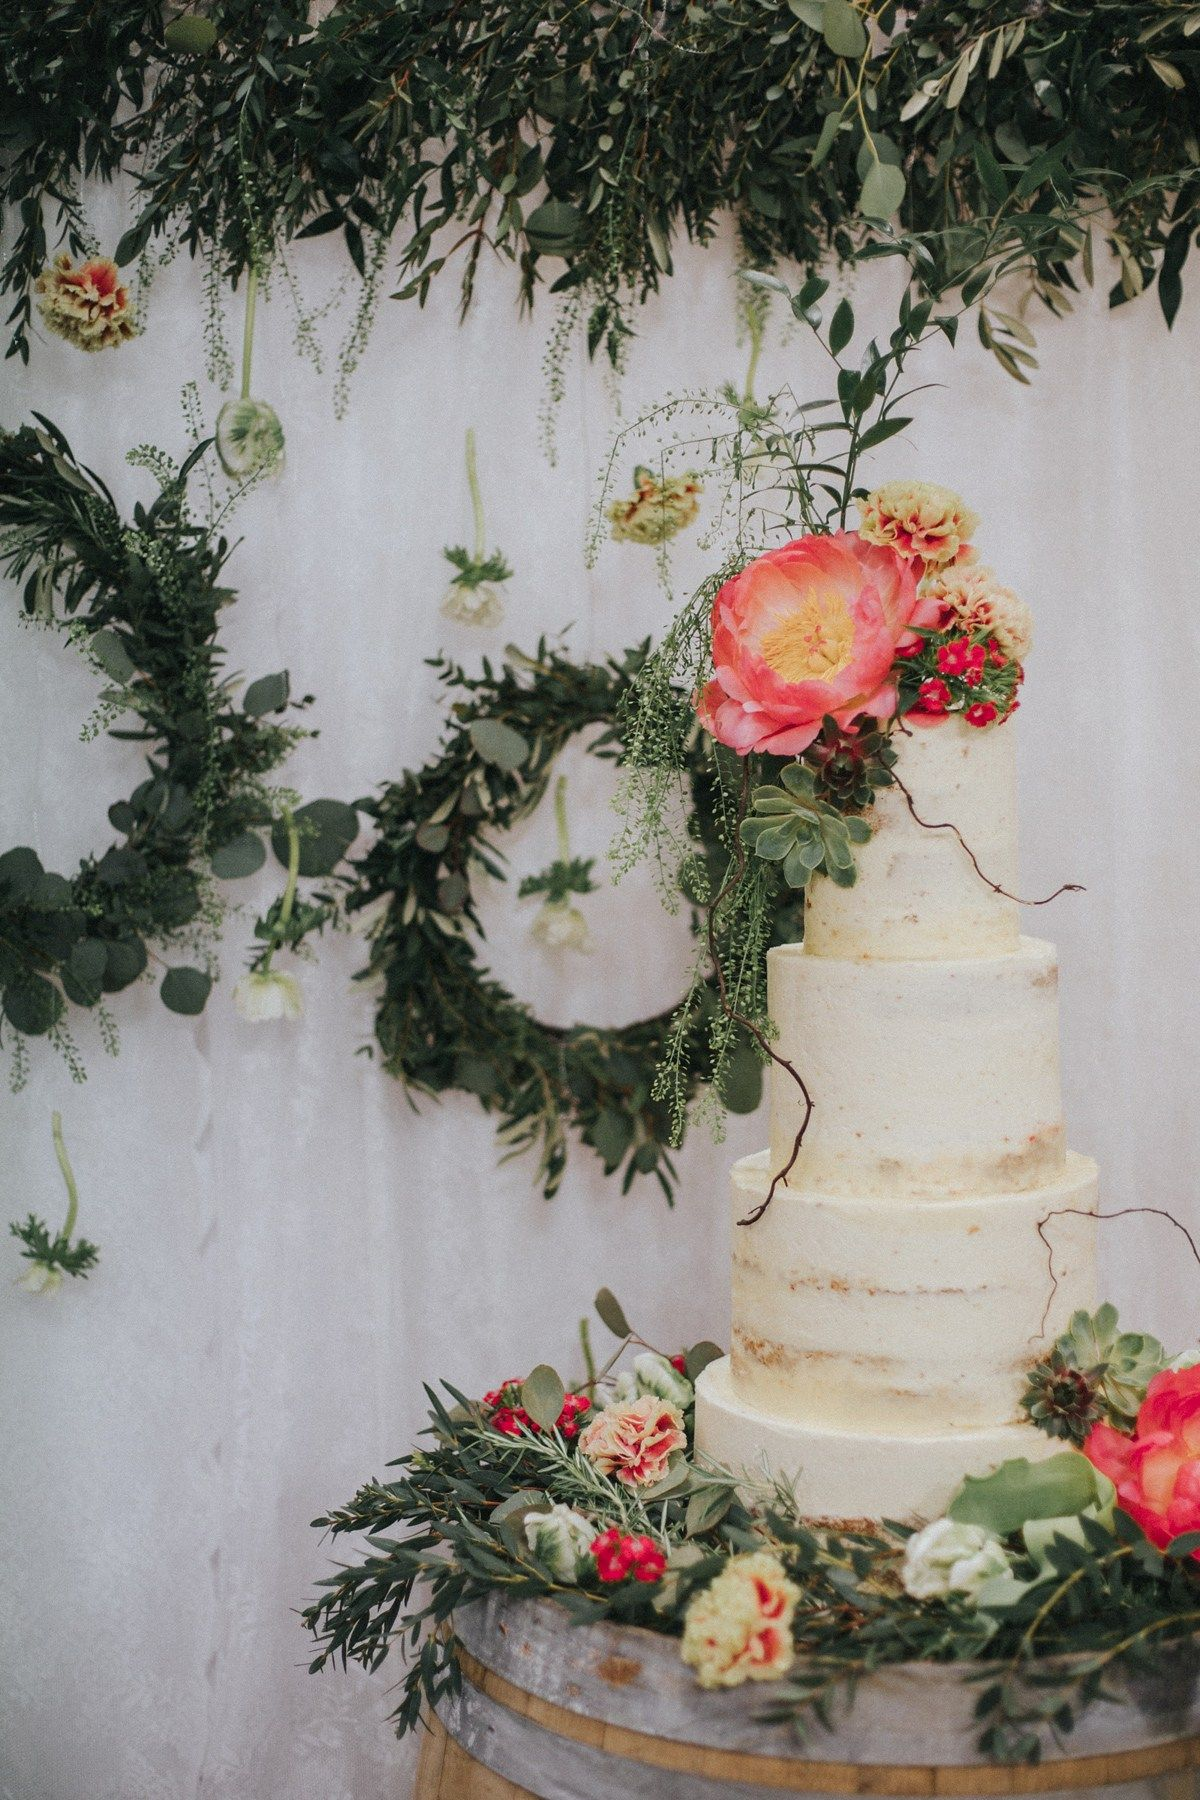 A huge semi-naked Victoria sponge for an Online Romance and a Wedding Planned in Just Nine Weeks. Images by Grace Elizabeth Photography